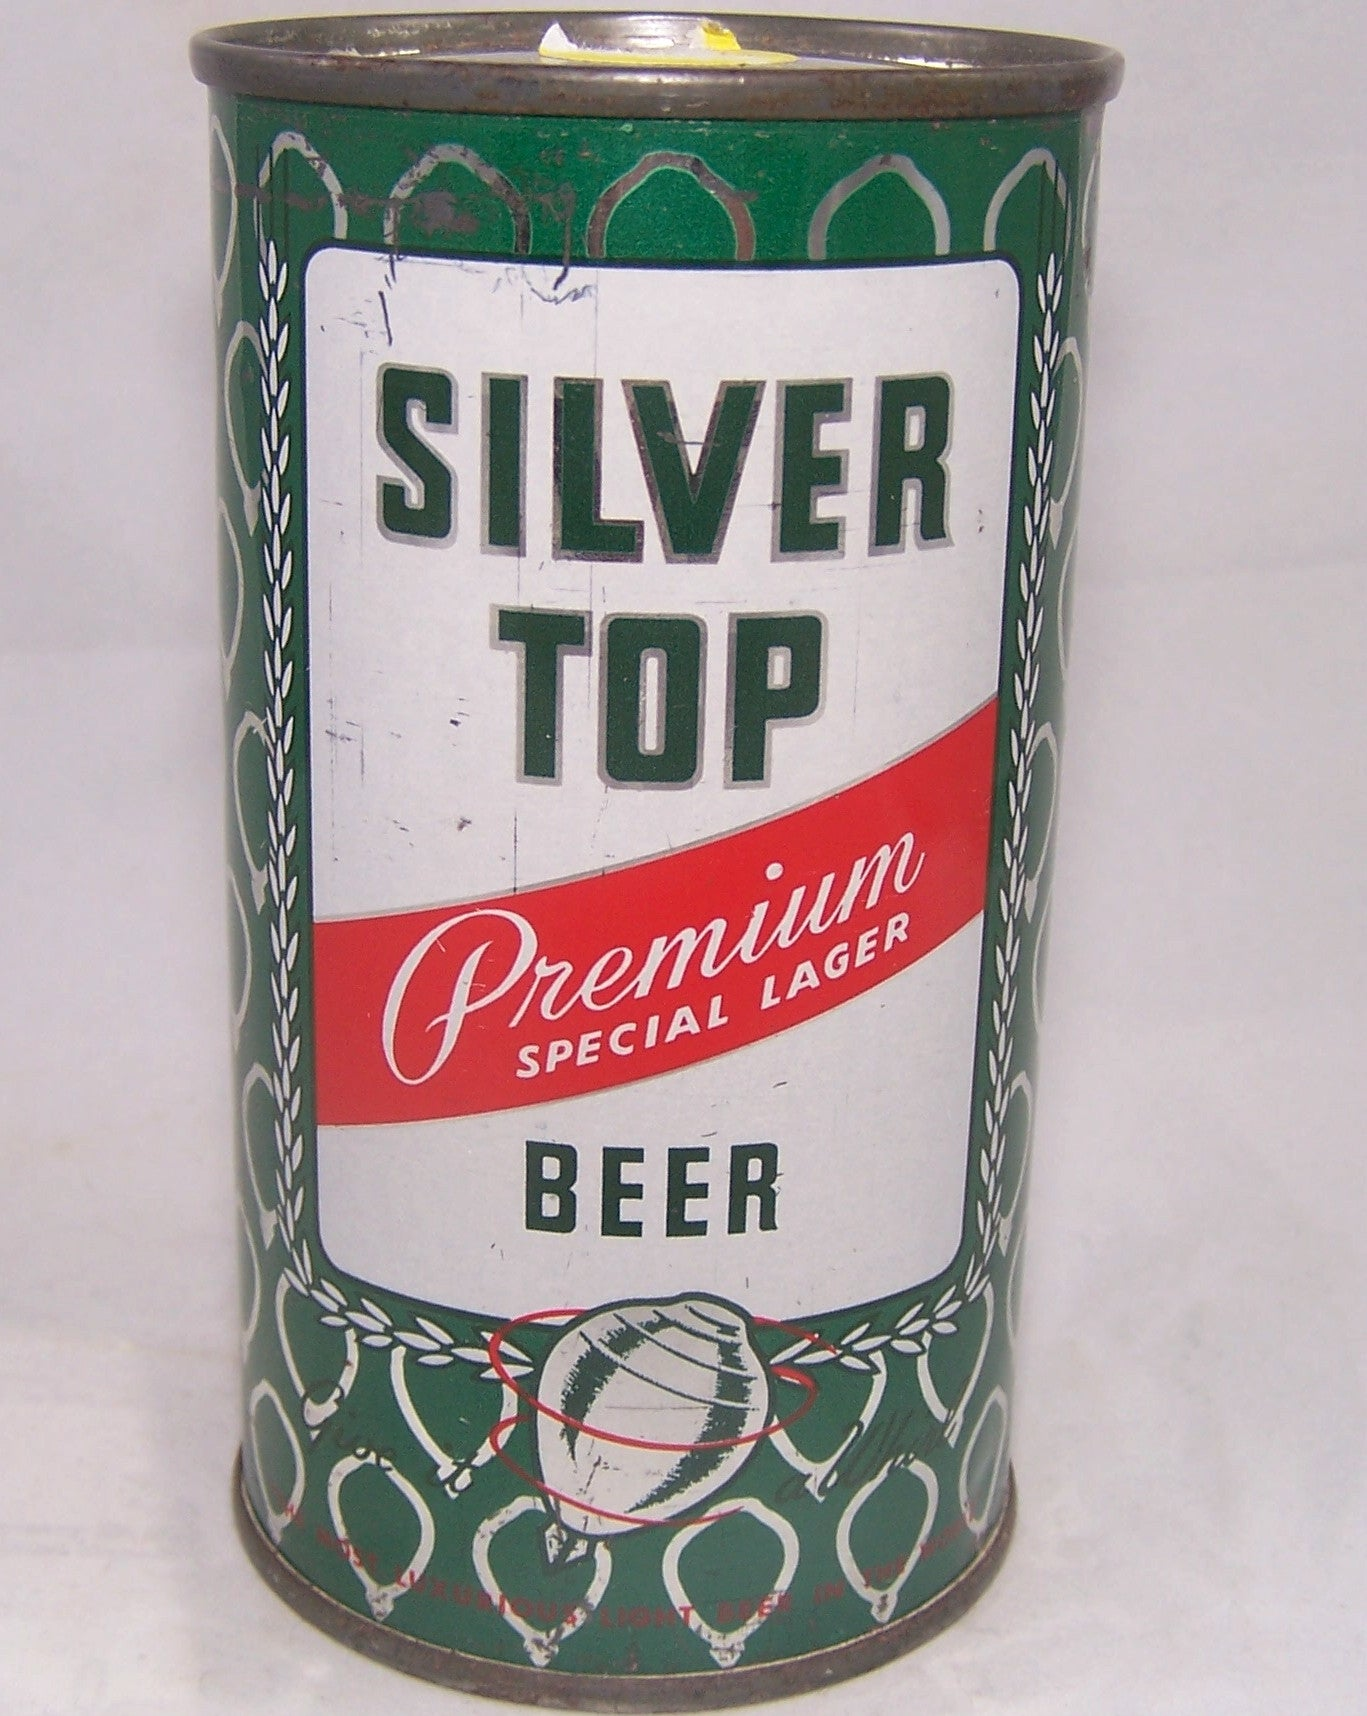 Silver Top Premium Lager Beer, USBC 134-22, Grade 1/1- sold on 09/21/16